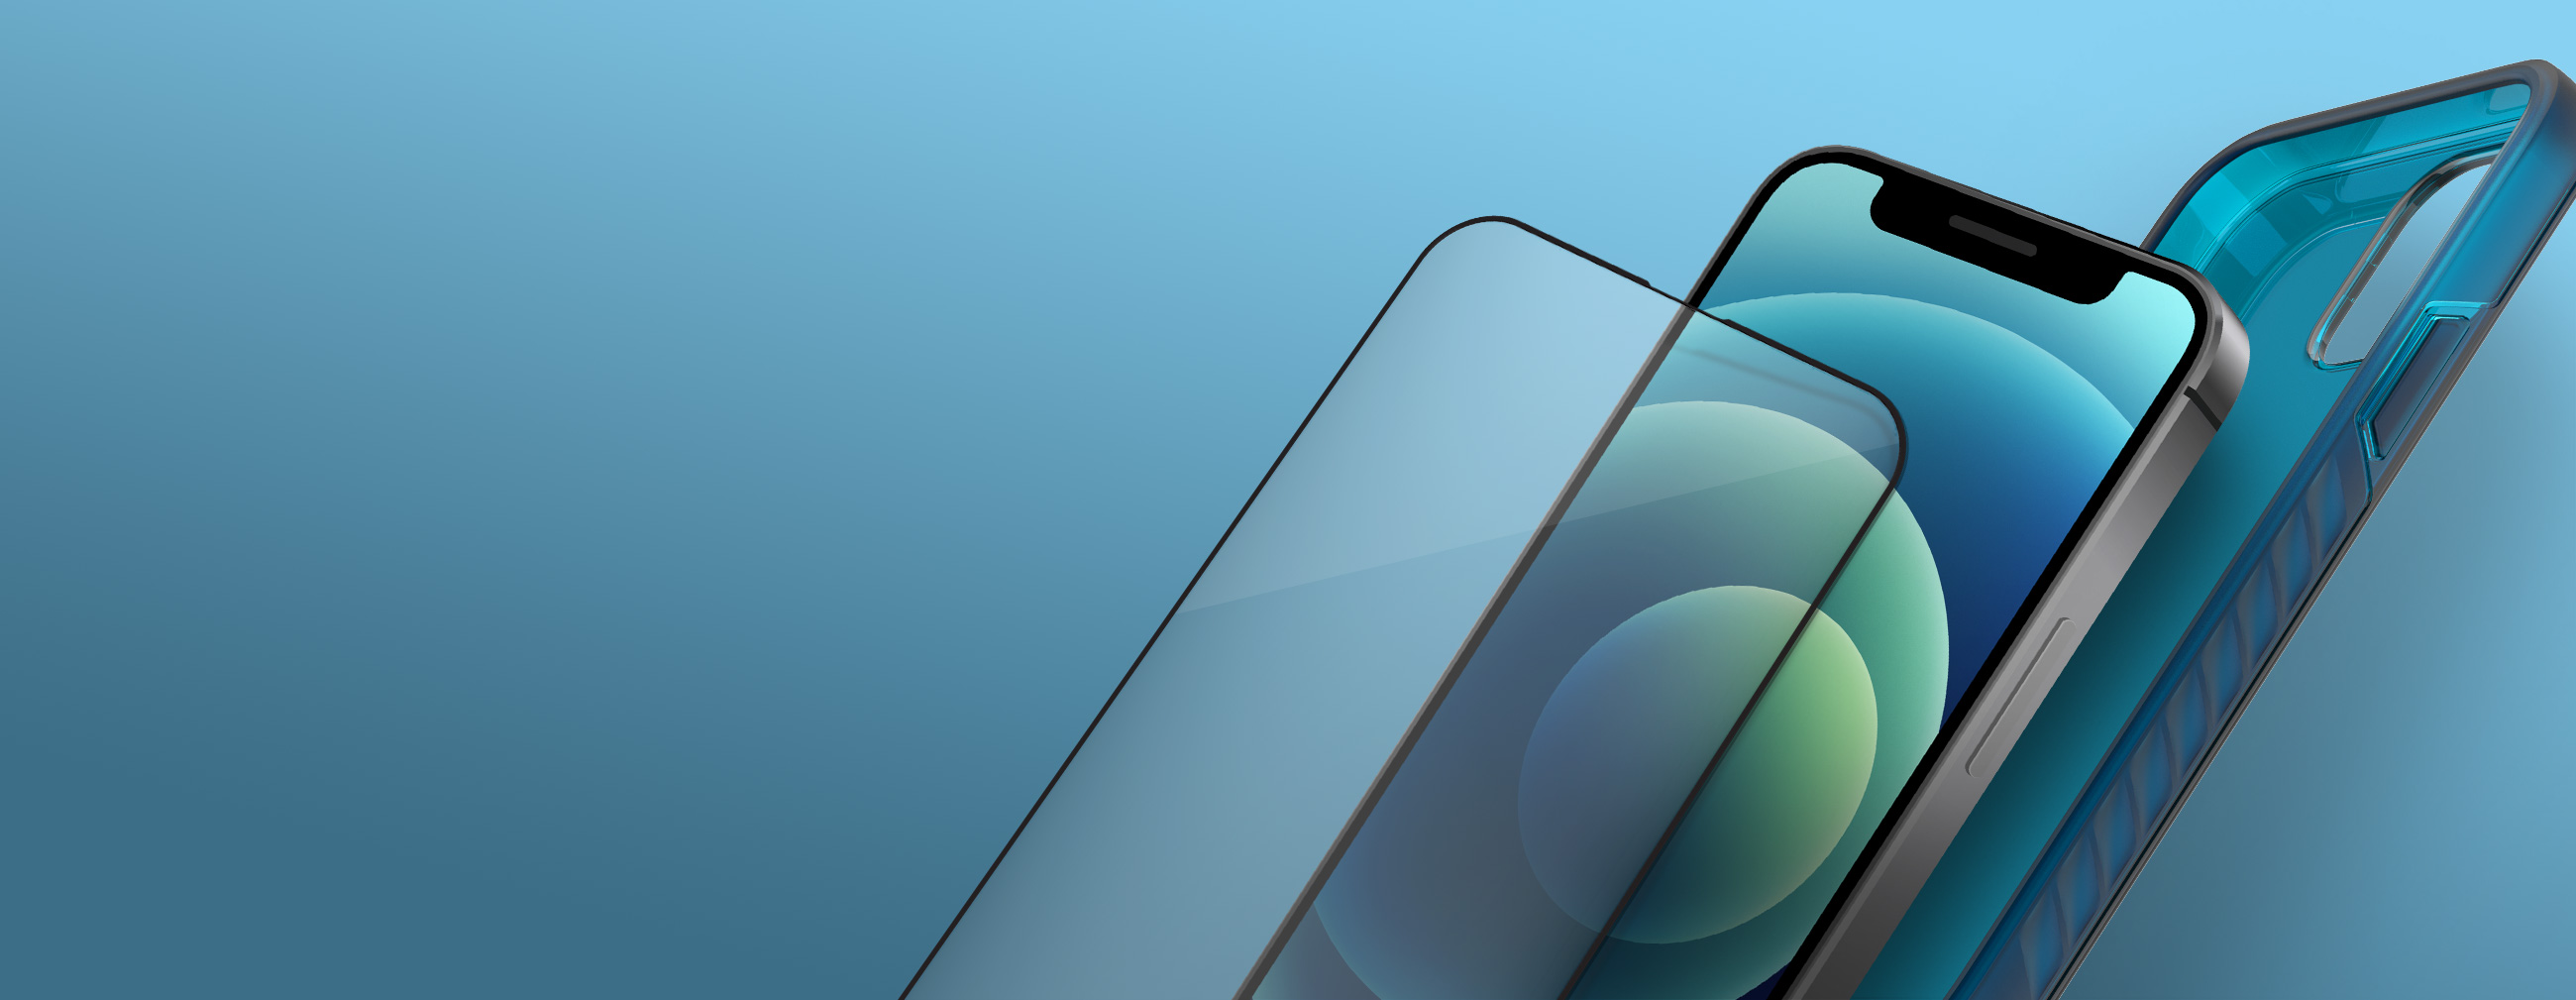 iphone 13 banner image 2